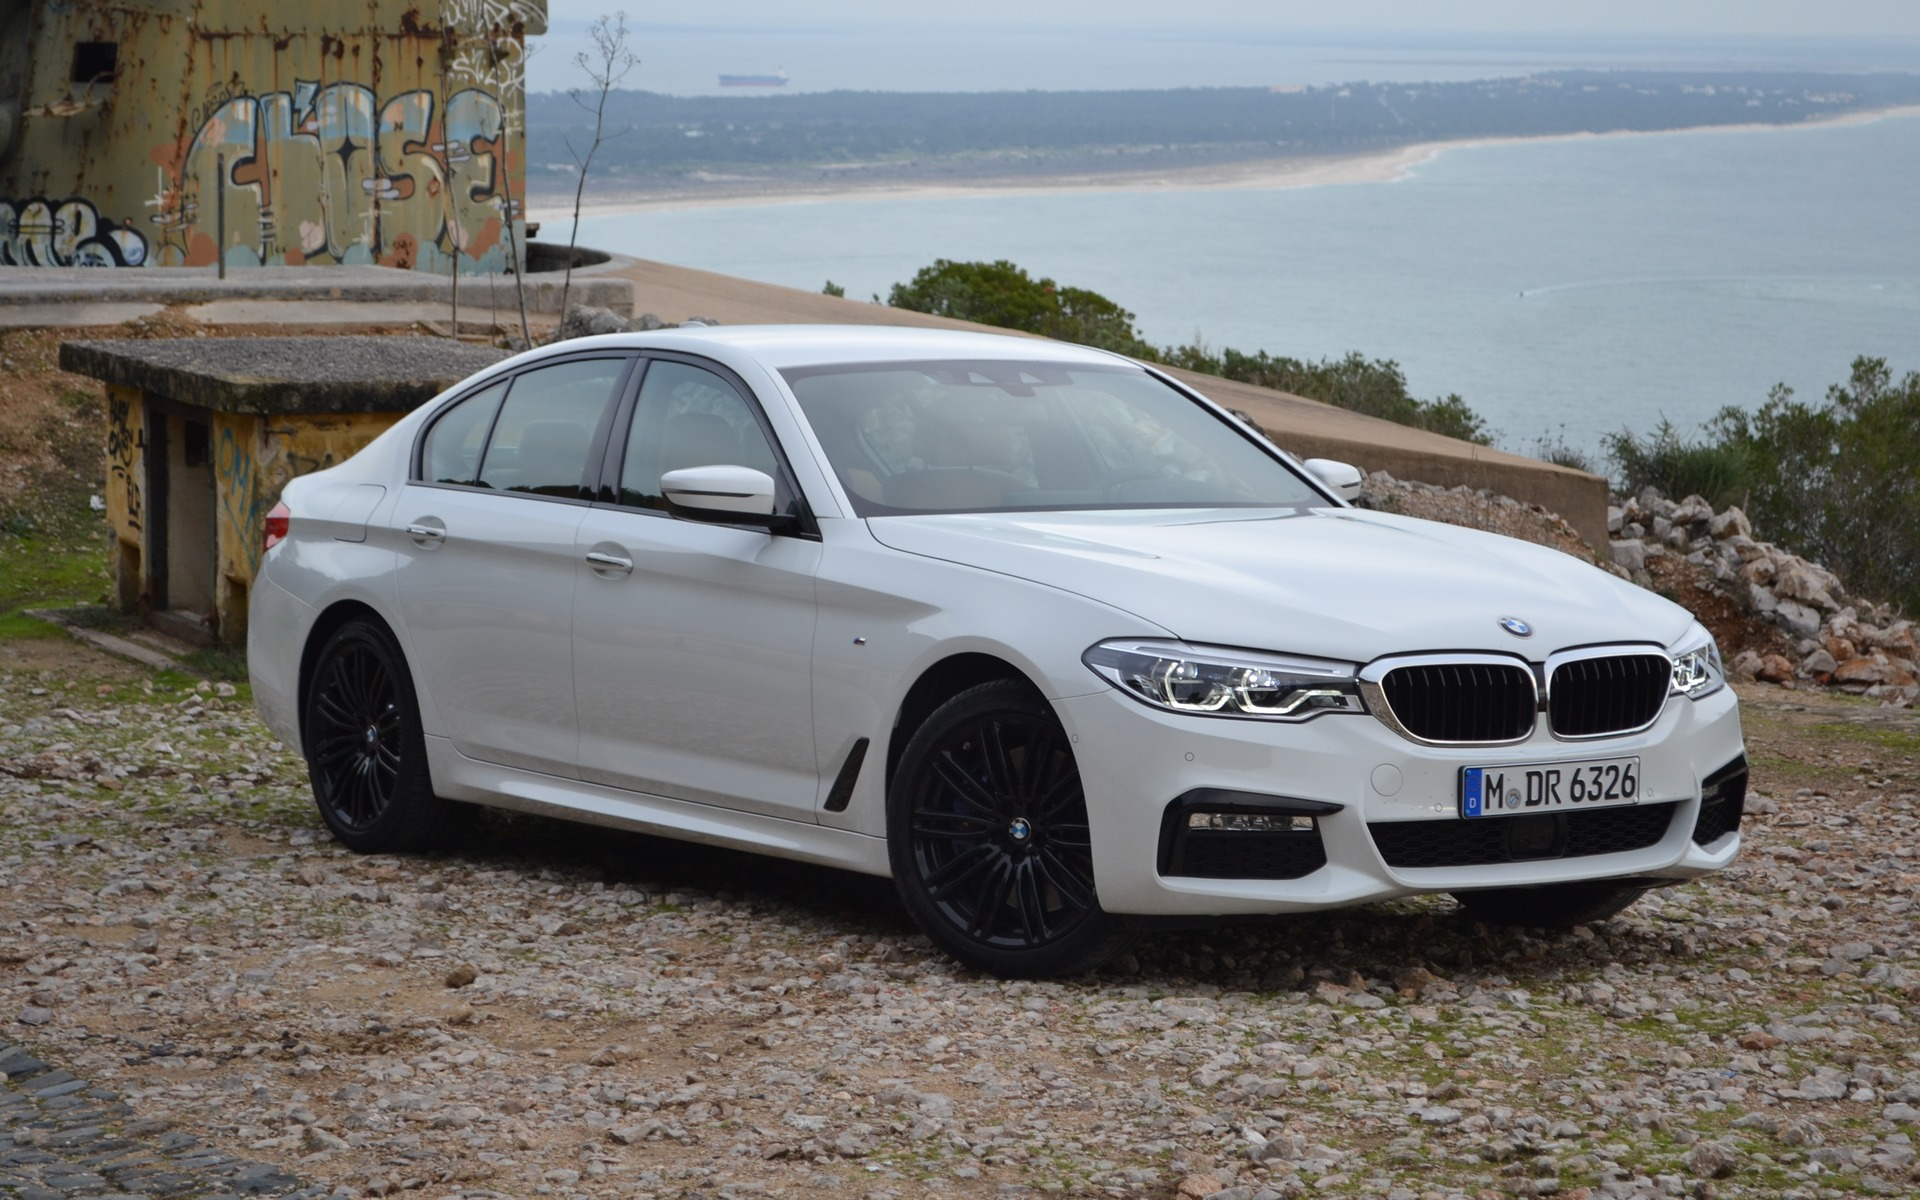 The new 2017 BMW 5 Series